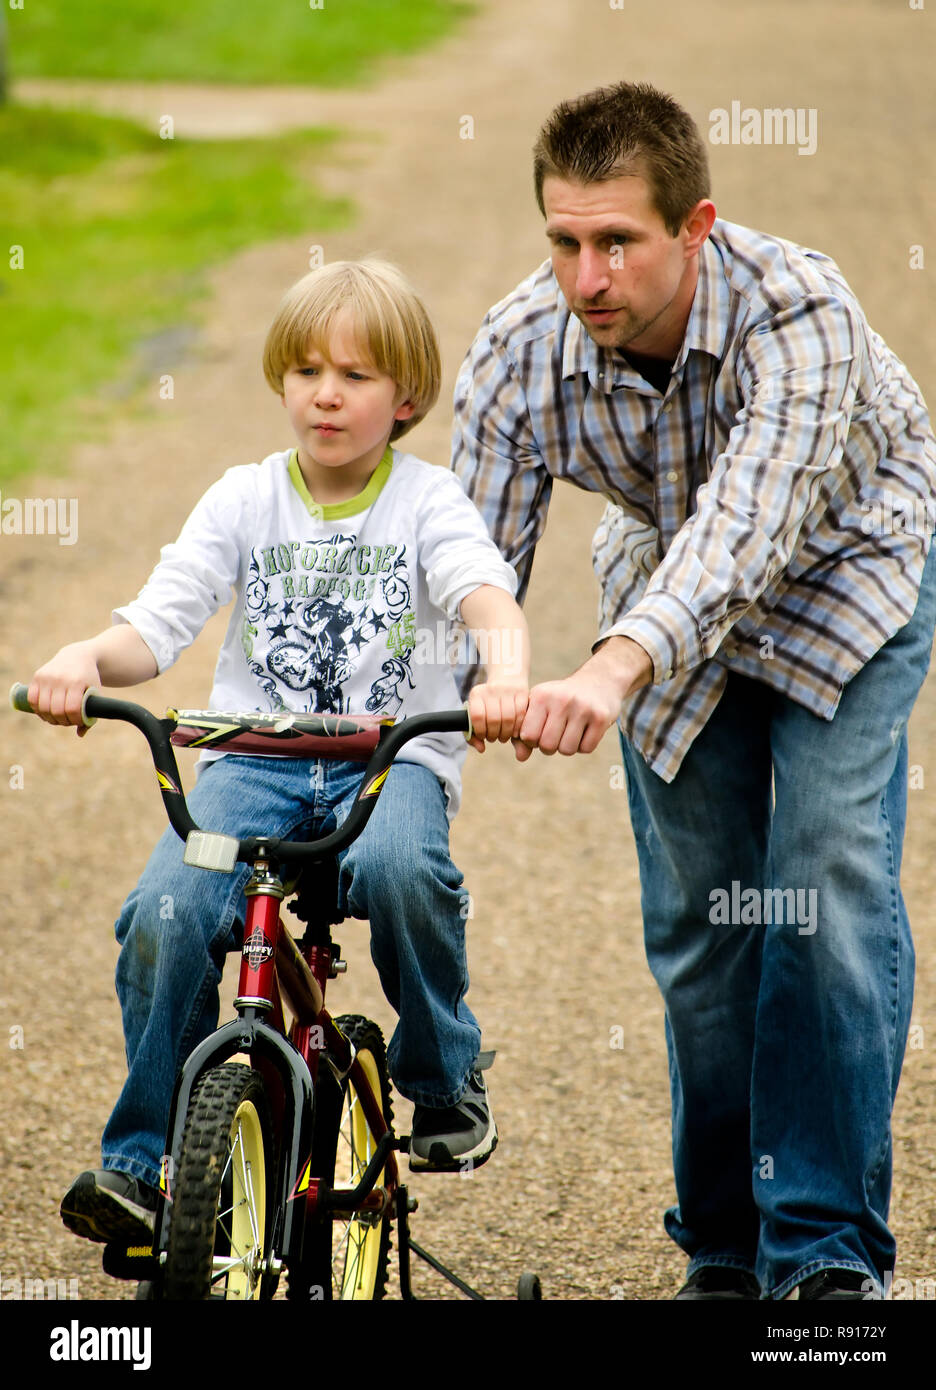 An autistic boy gets help from his father as he rides his bicycle up a steep hill, April 21, 2012, in New Hope, Mississippi. - Stock Image